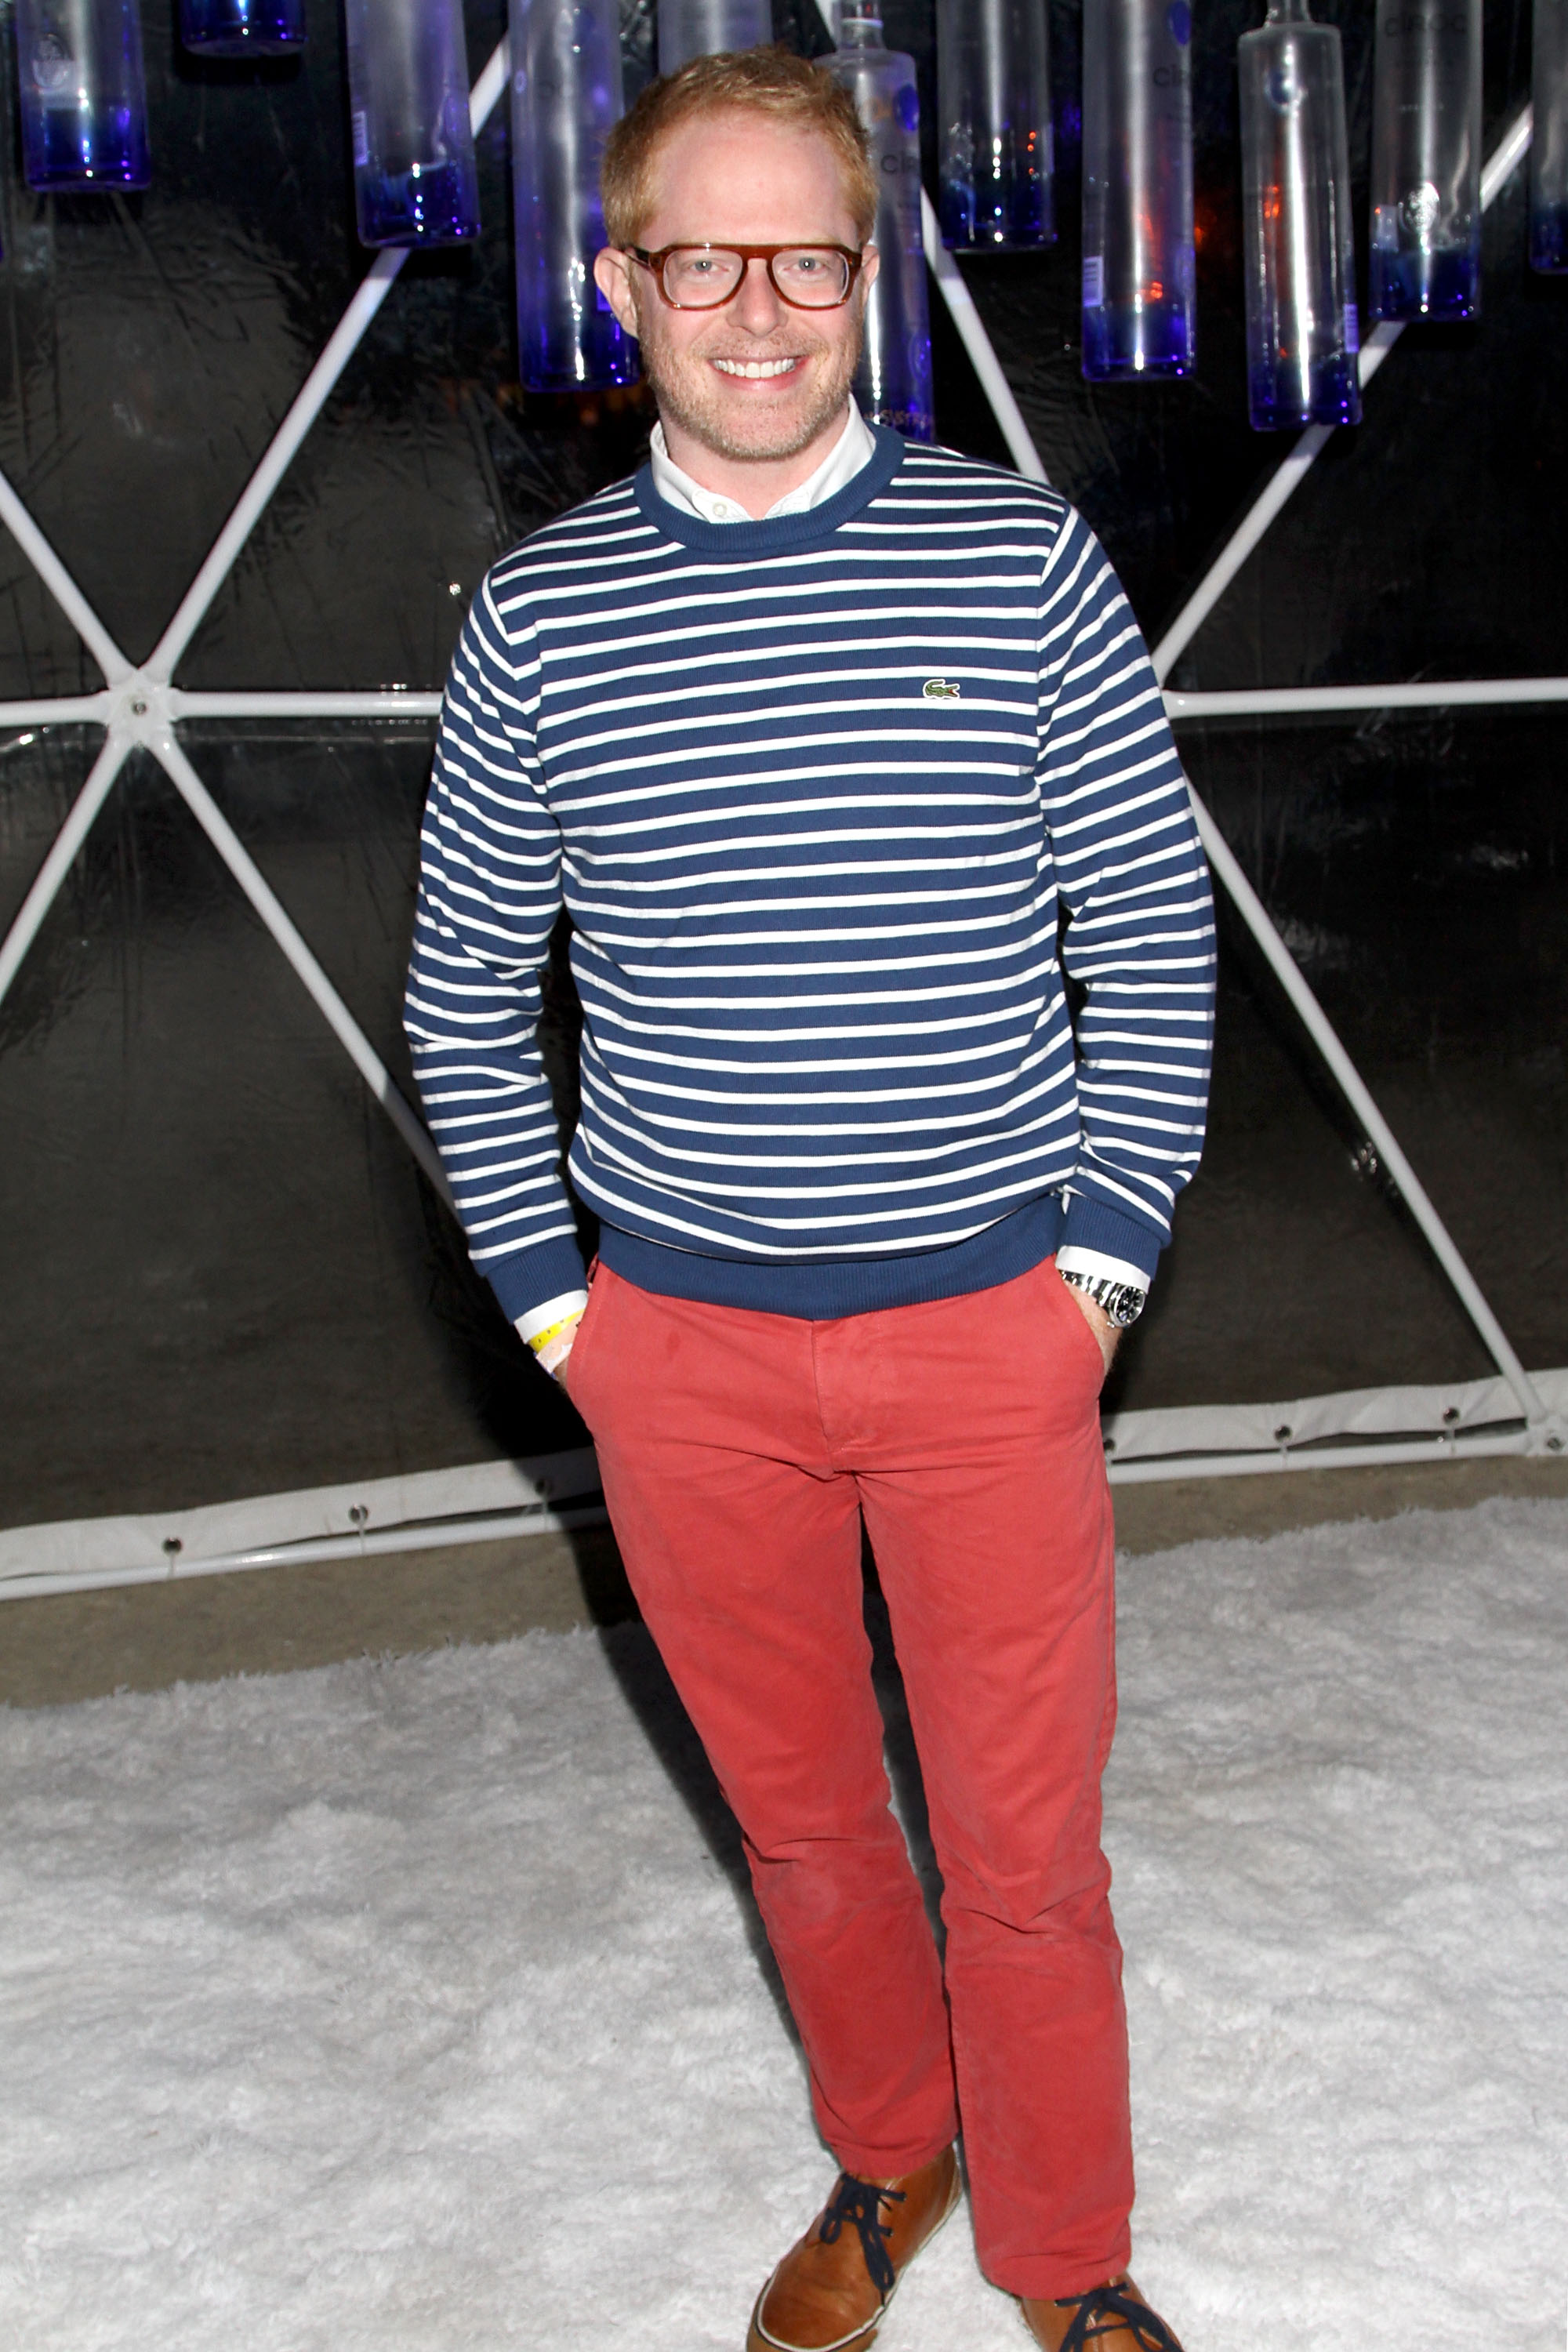 Jesse Tyler Ferguson brought his stripes to GenArt's Coachella party in 2012.